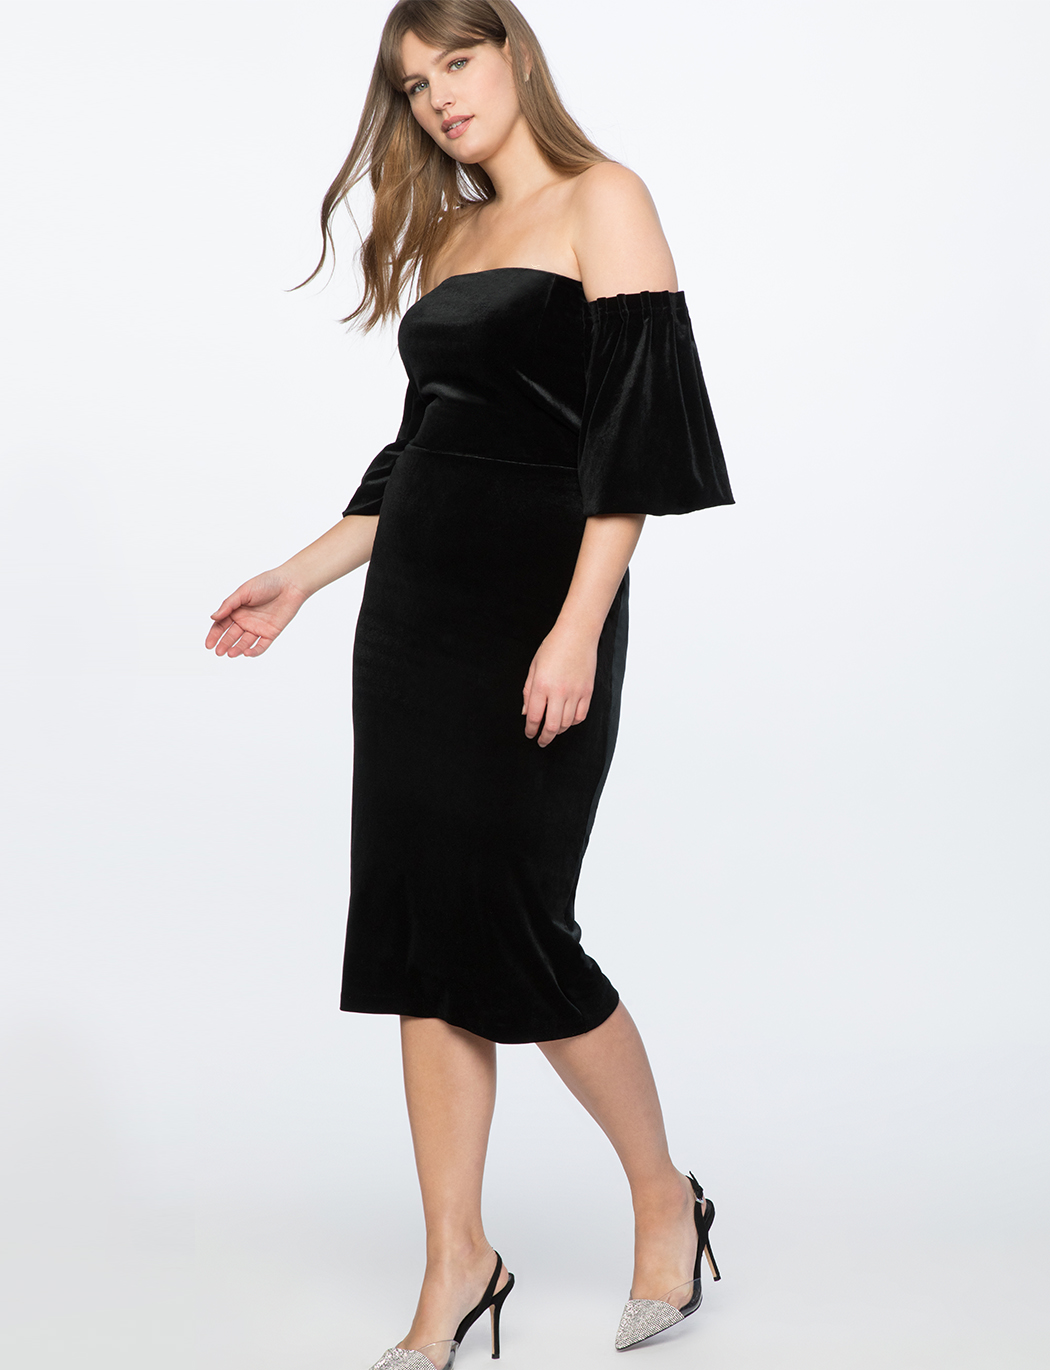 Strapless Velvet Dress with Full Sleeves 15